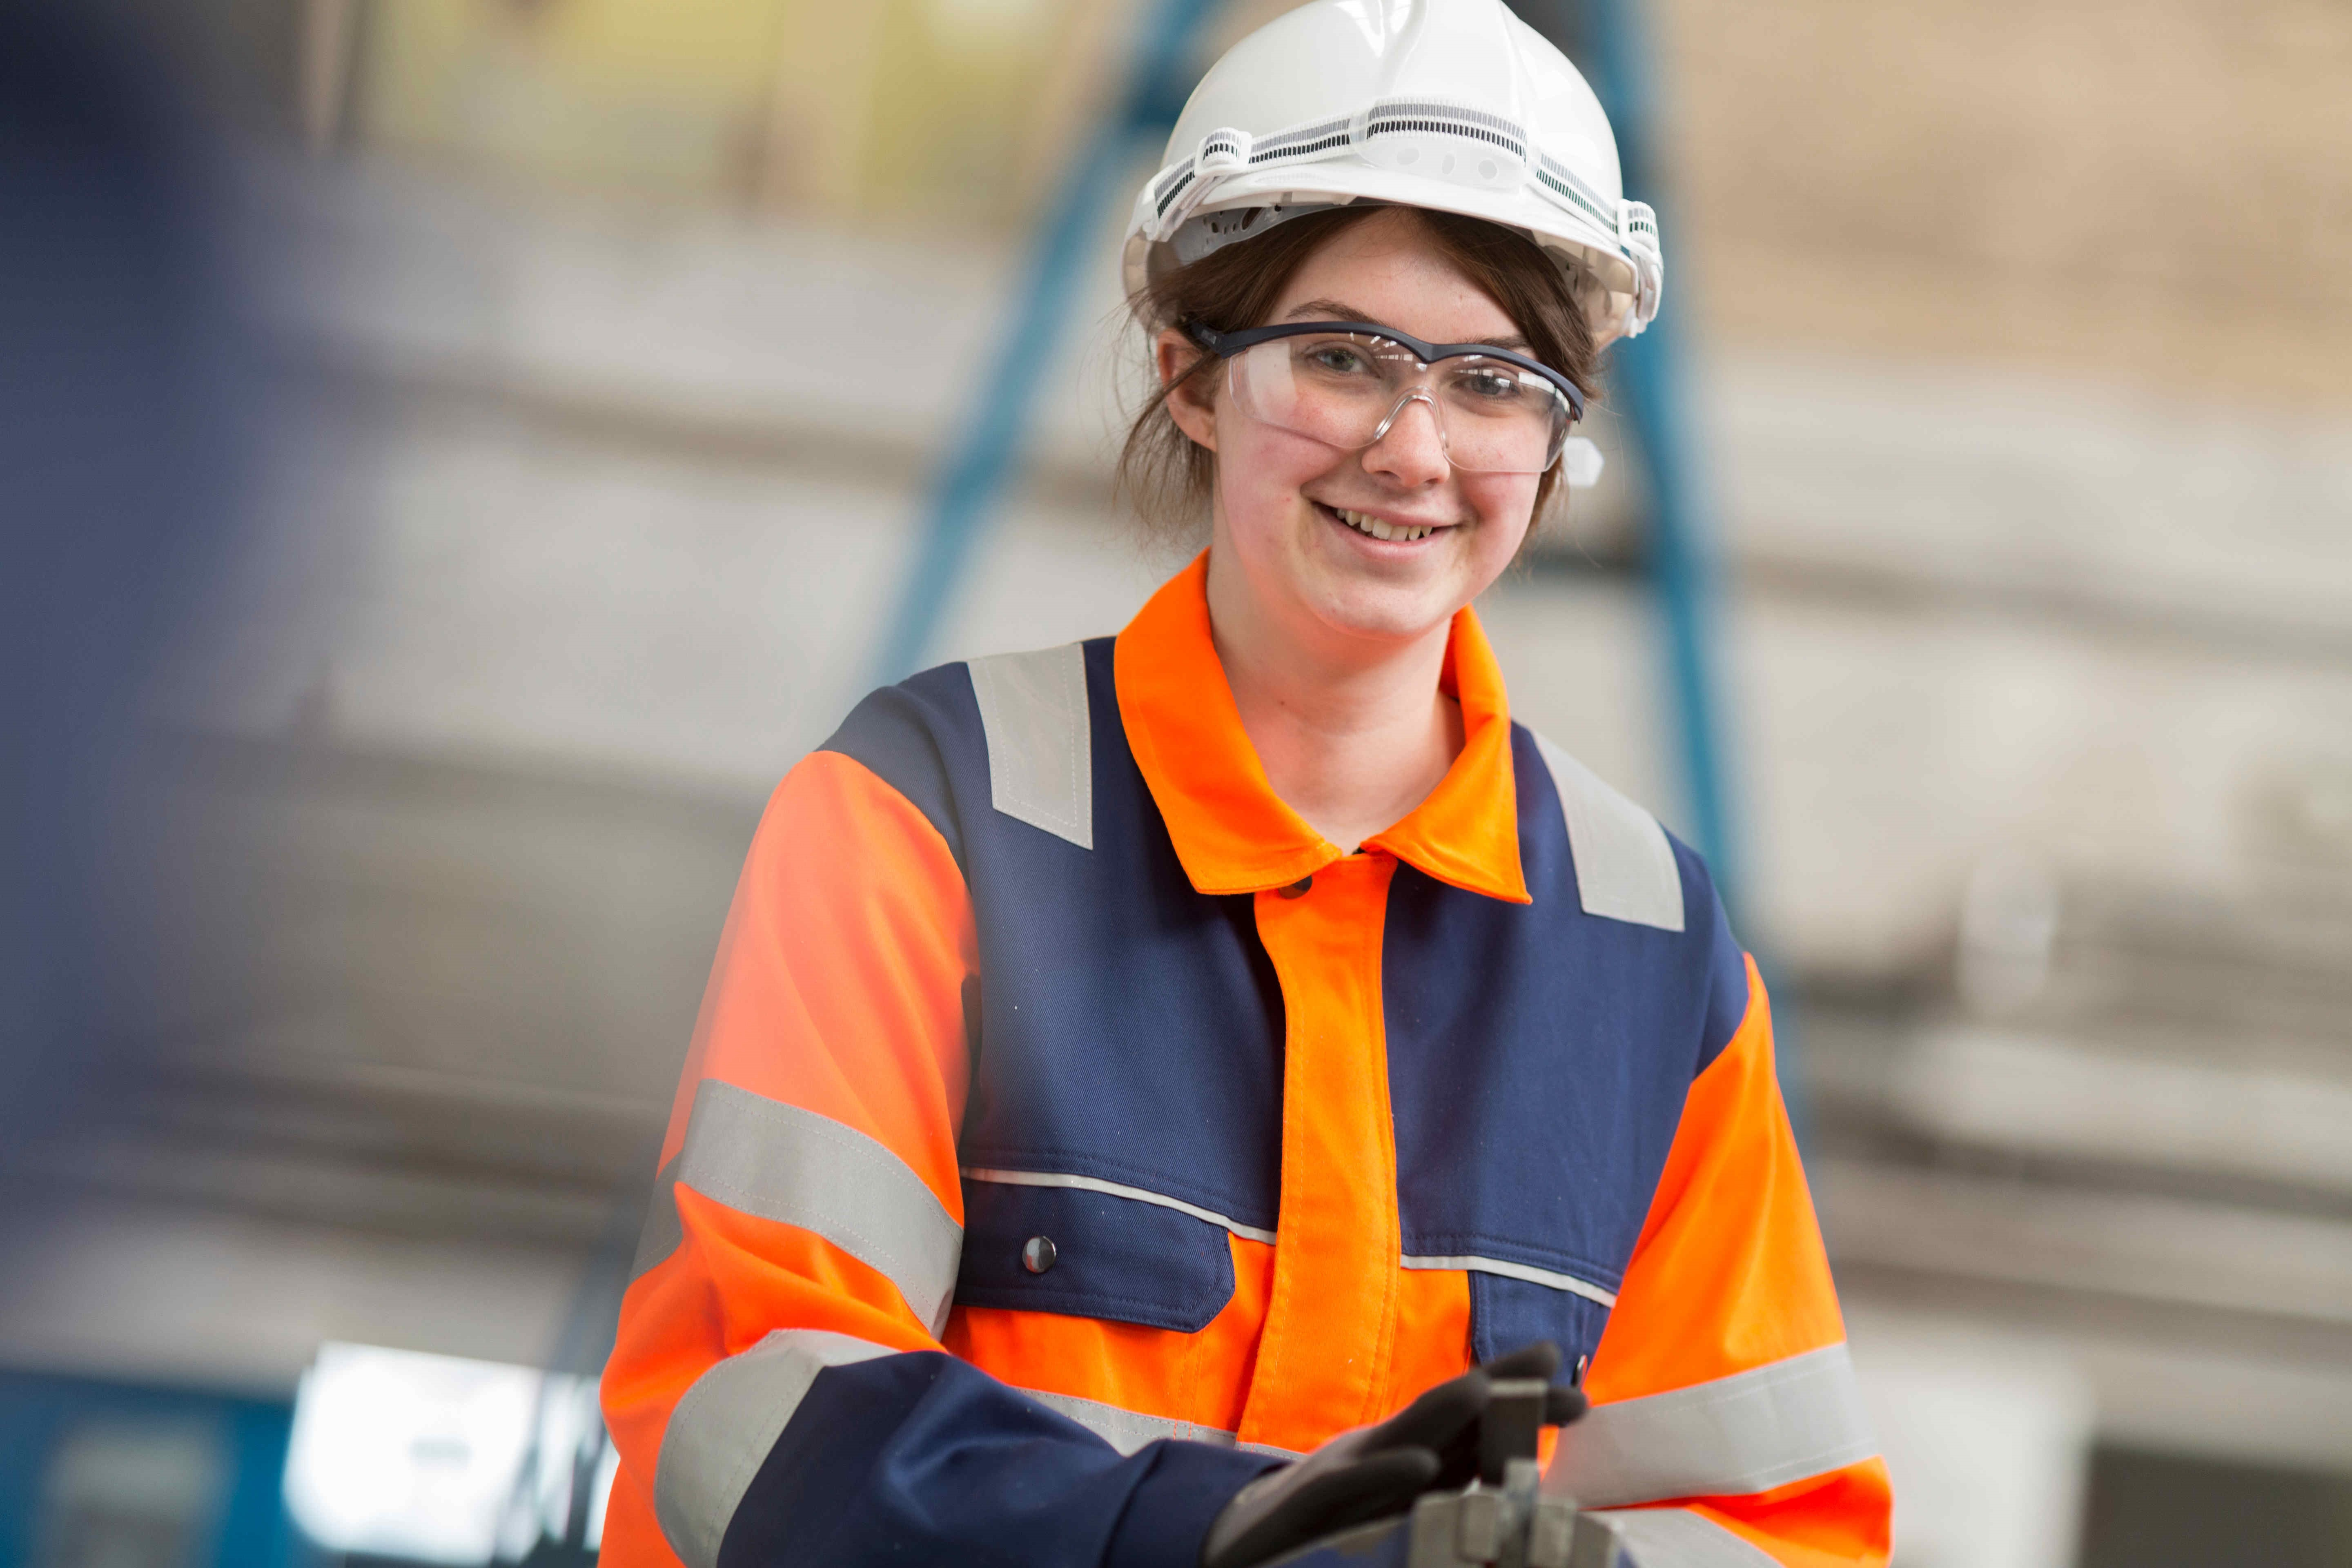 One of our female employees working in the manufacturing and engineering industry.